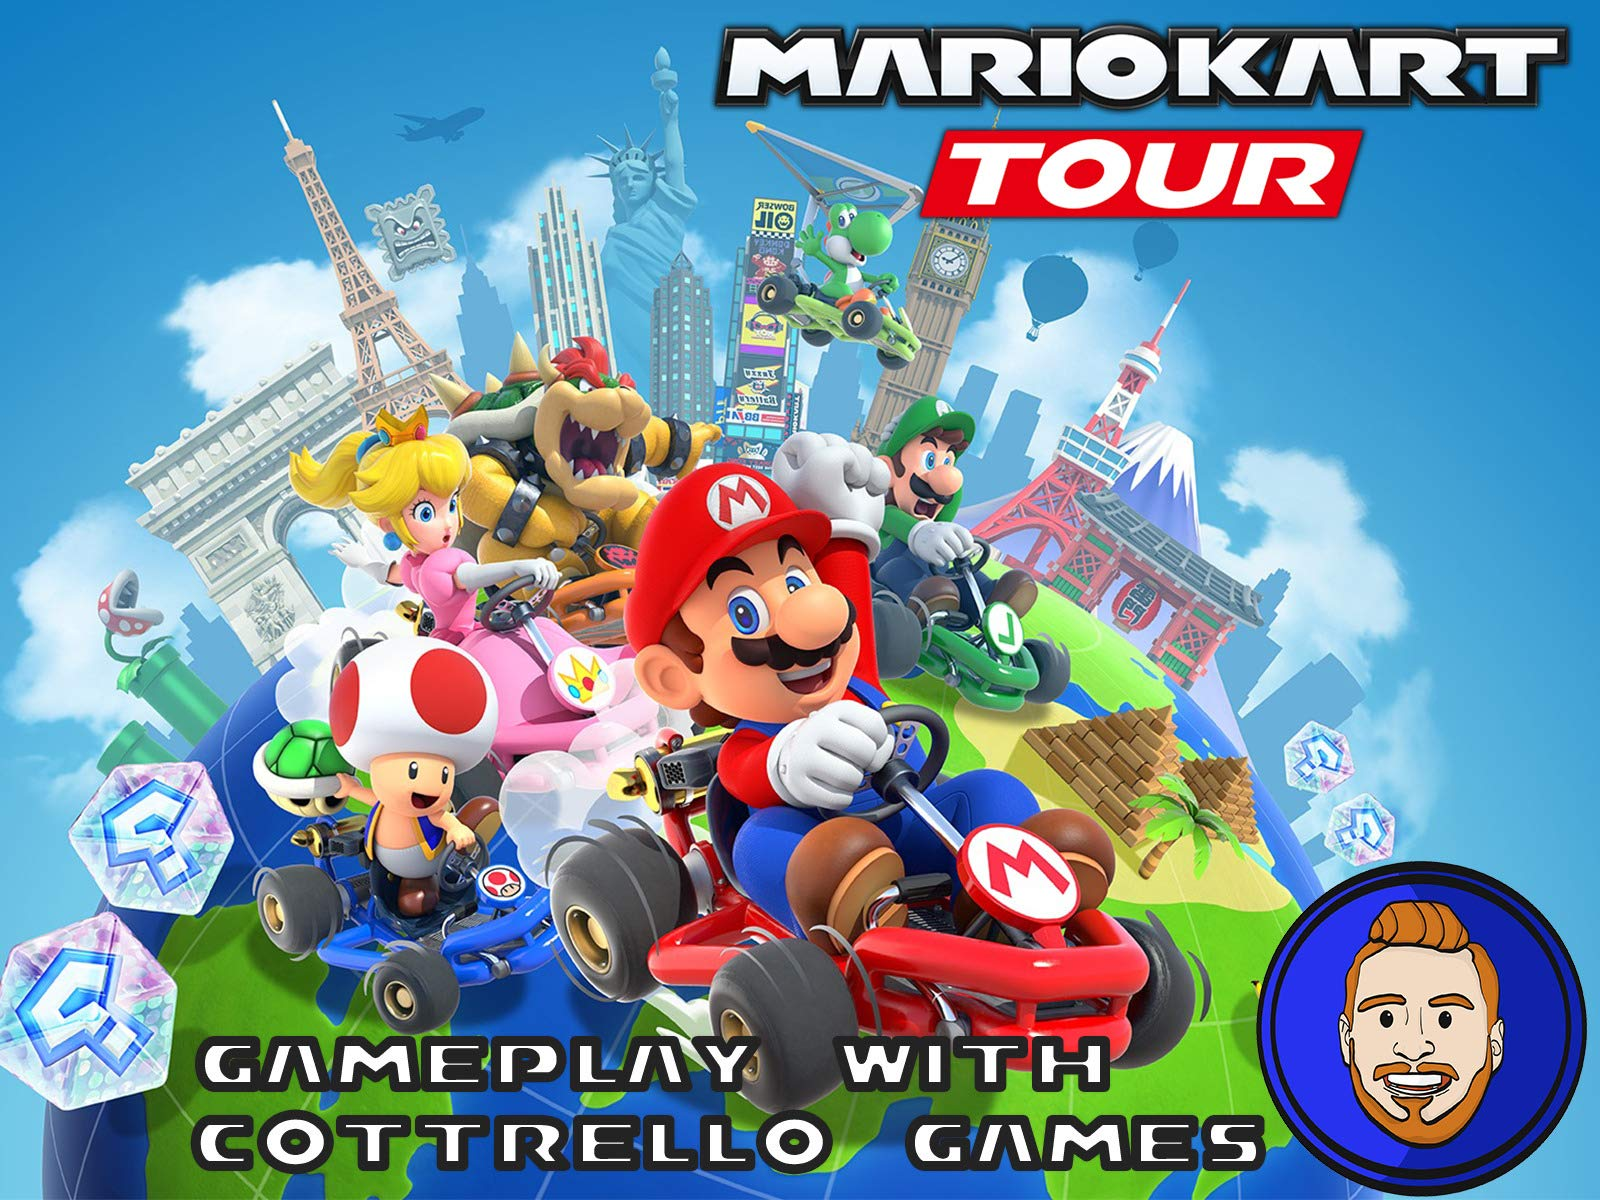 Mario Kart Tour Gameplay with Cottrello Games